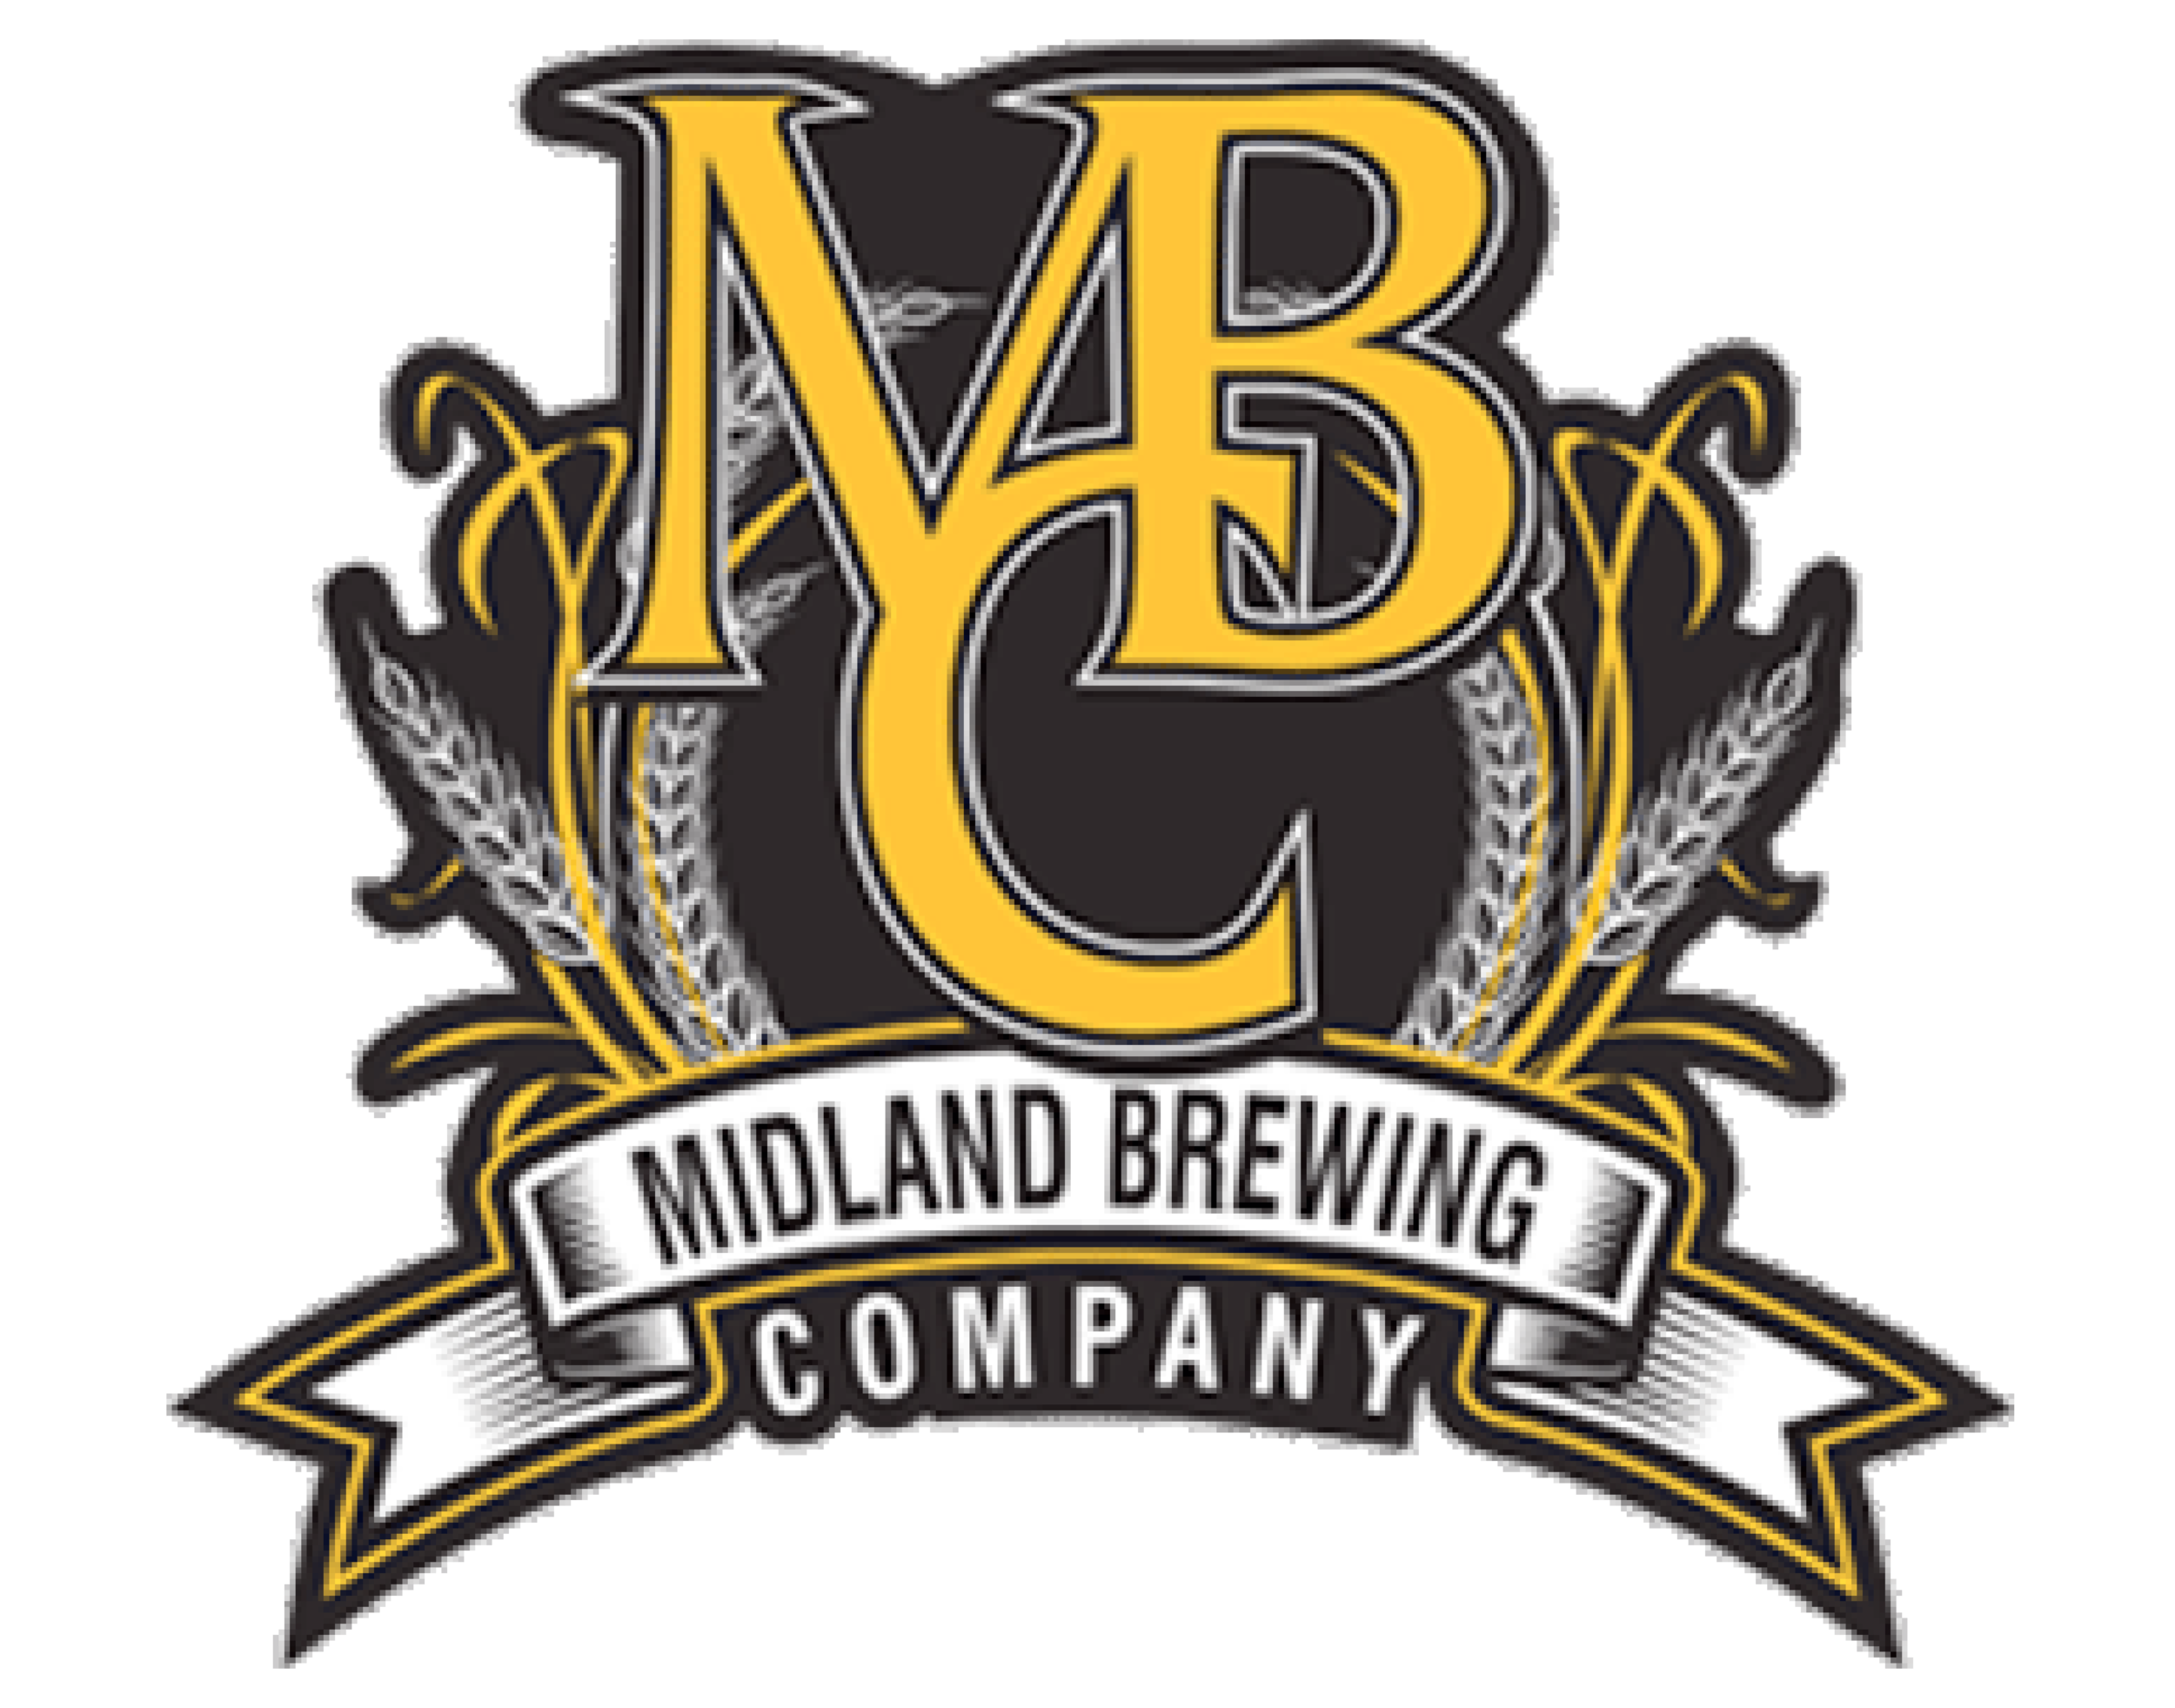 Midland Brewing Company logo. Link to Midland Brewing Company website.